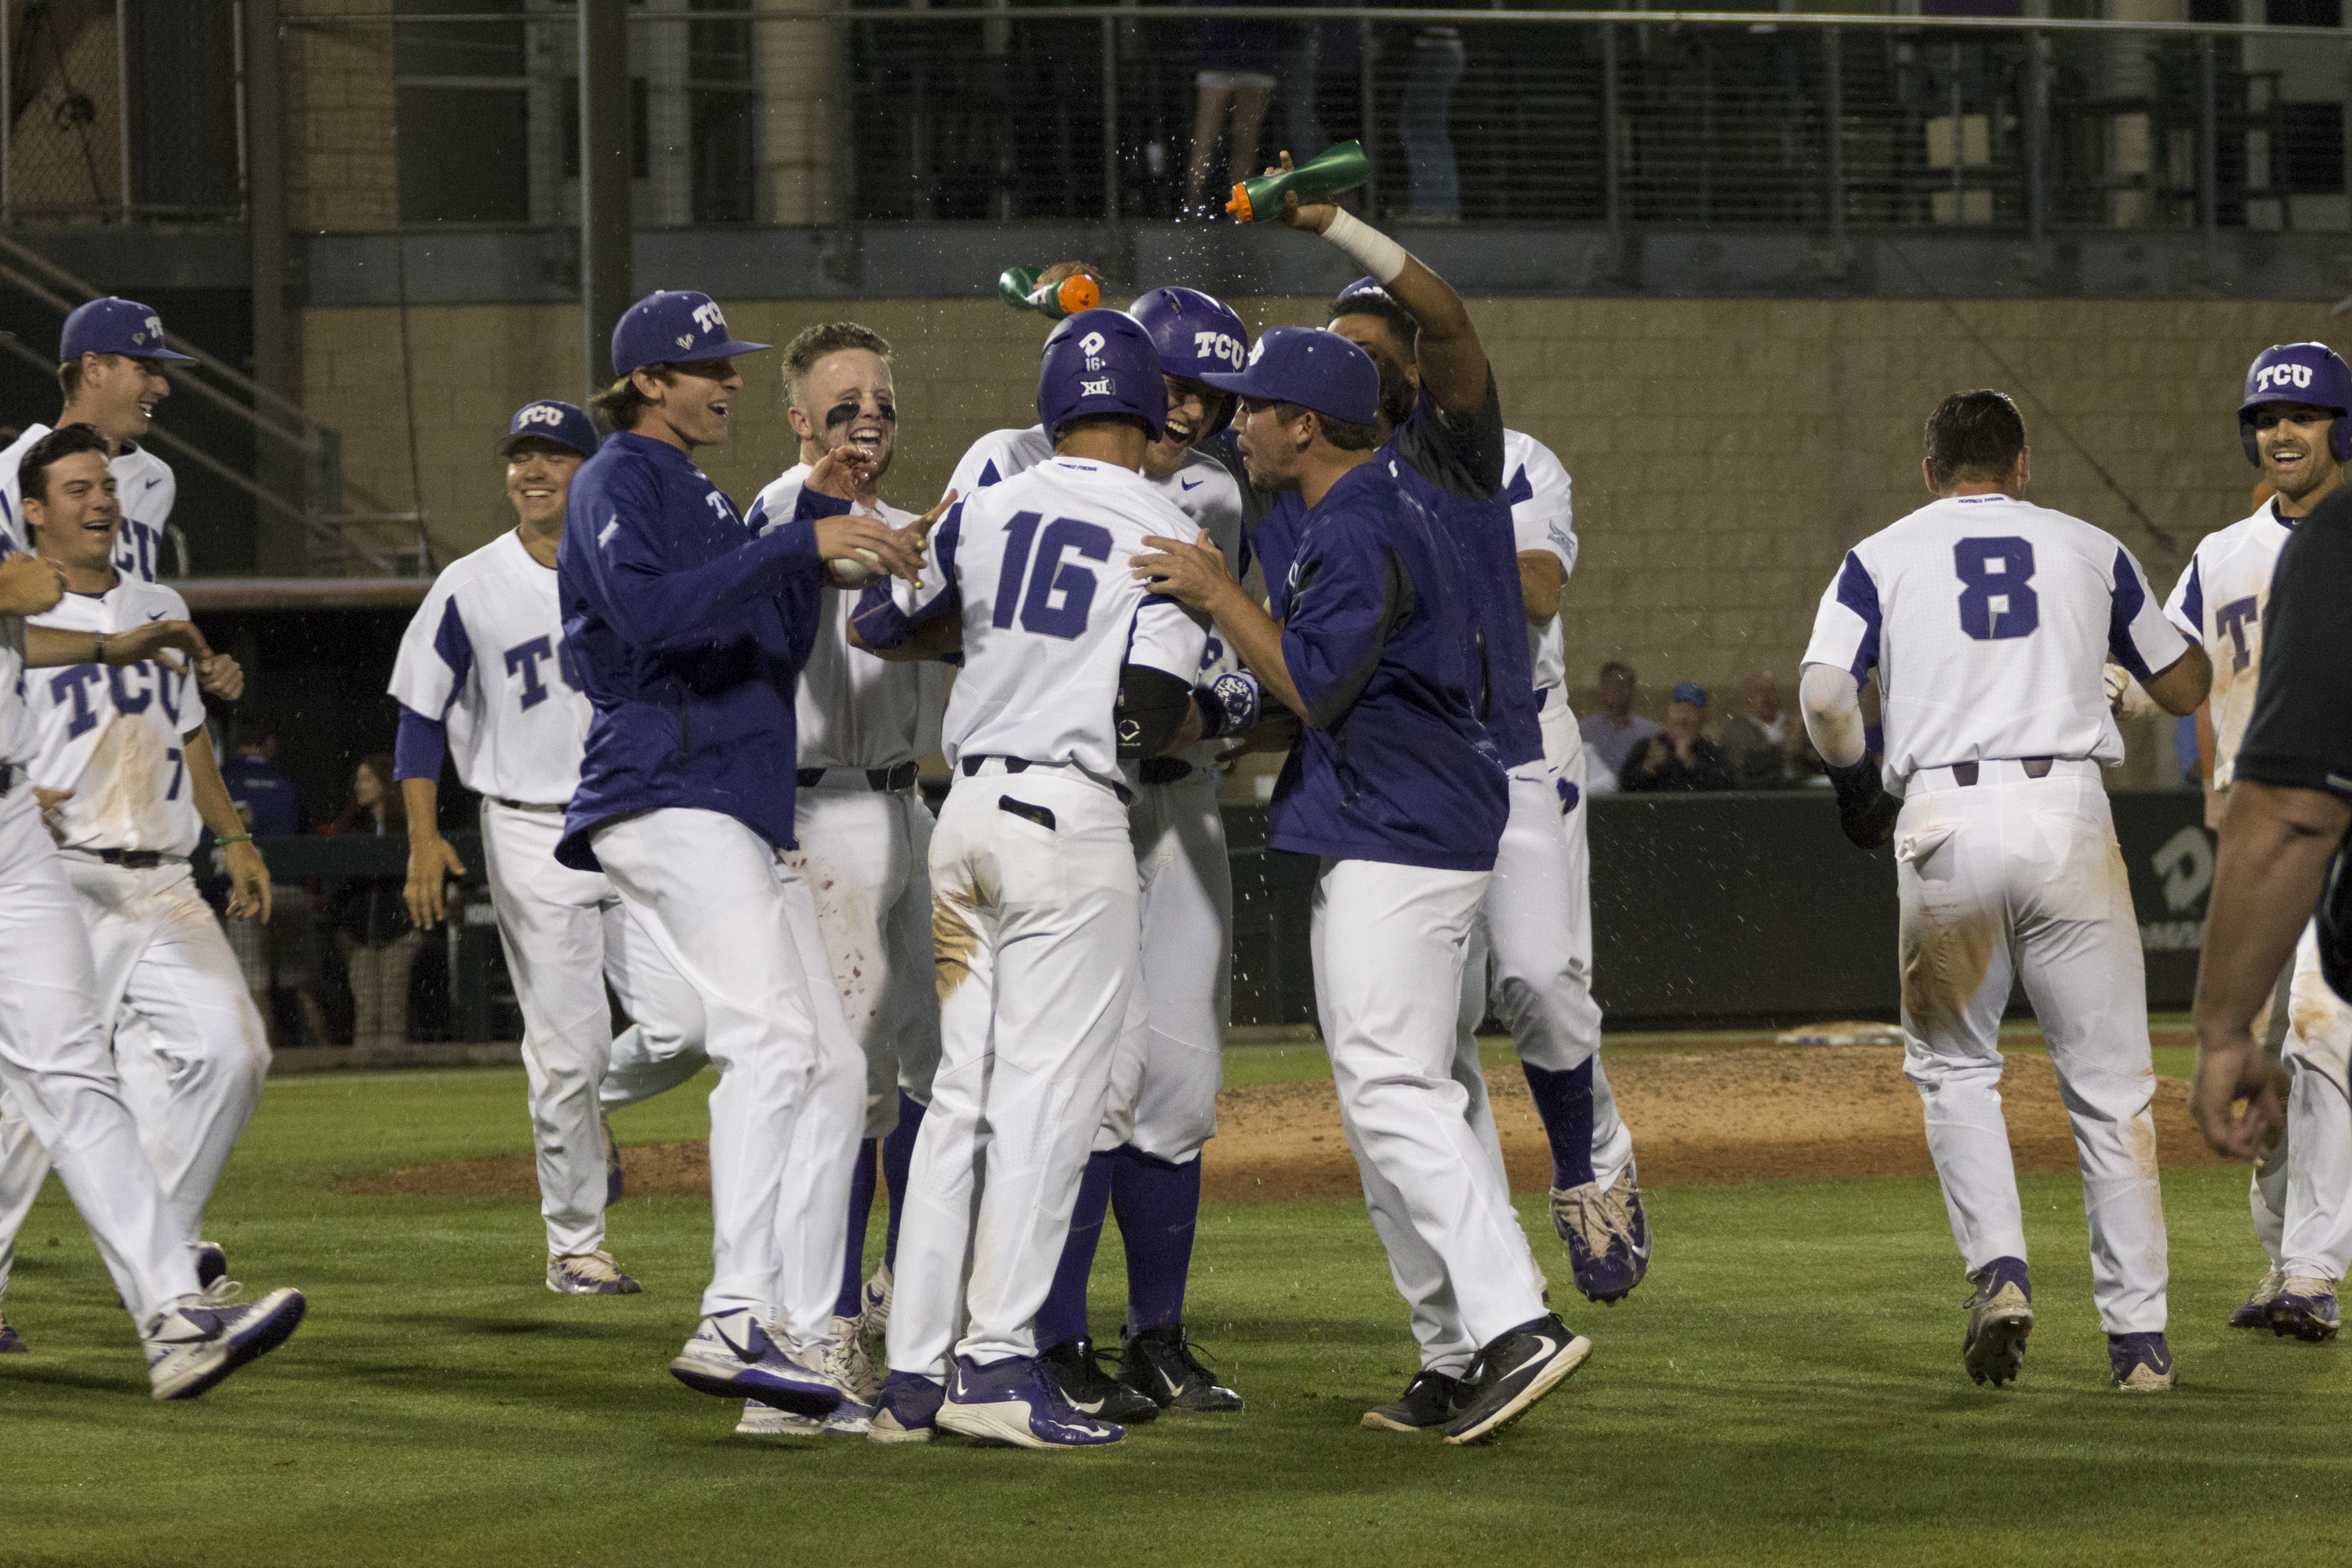 TCU hopes they have a few more celebrations in store at Lupton this season.